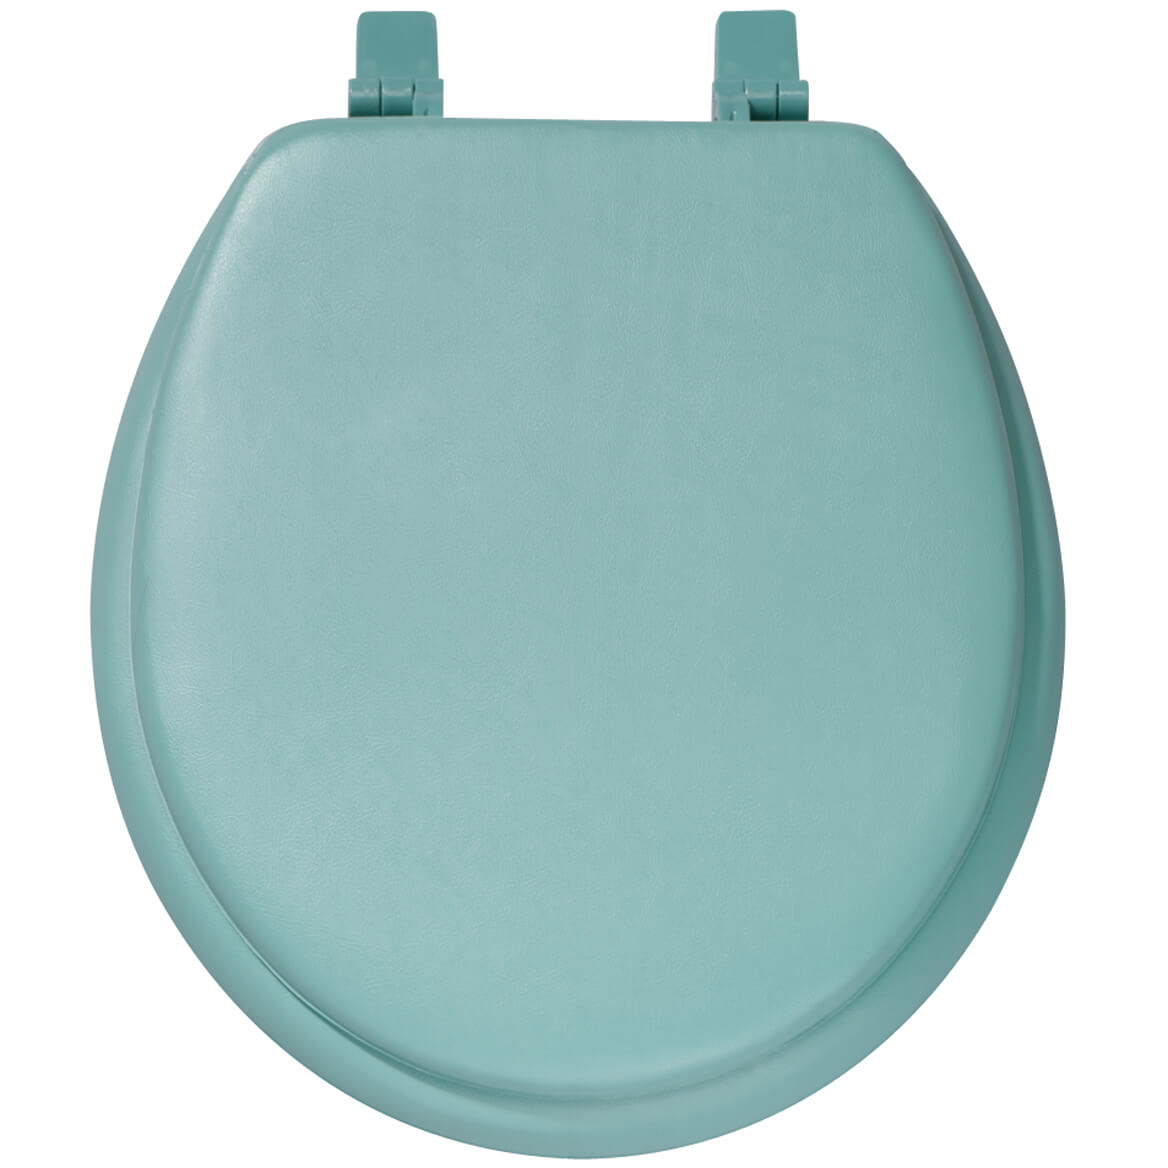 Padded Toilet Seat And Lid Cushioned Toilet Seat Miles Kimball - Burgundy toilet seat cover